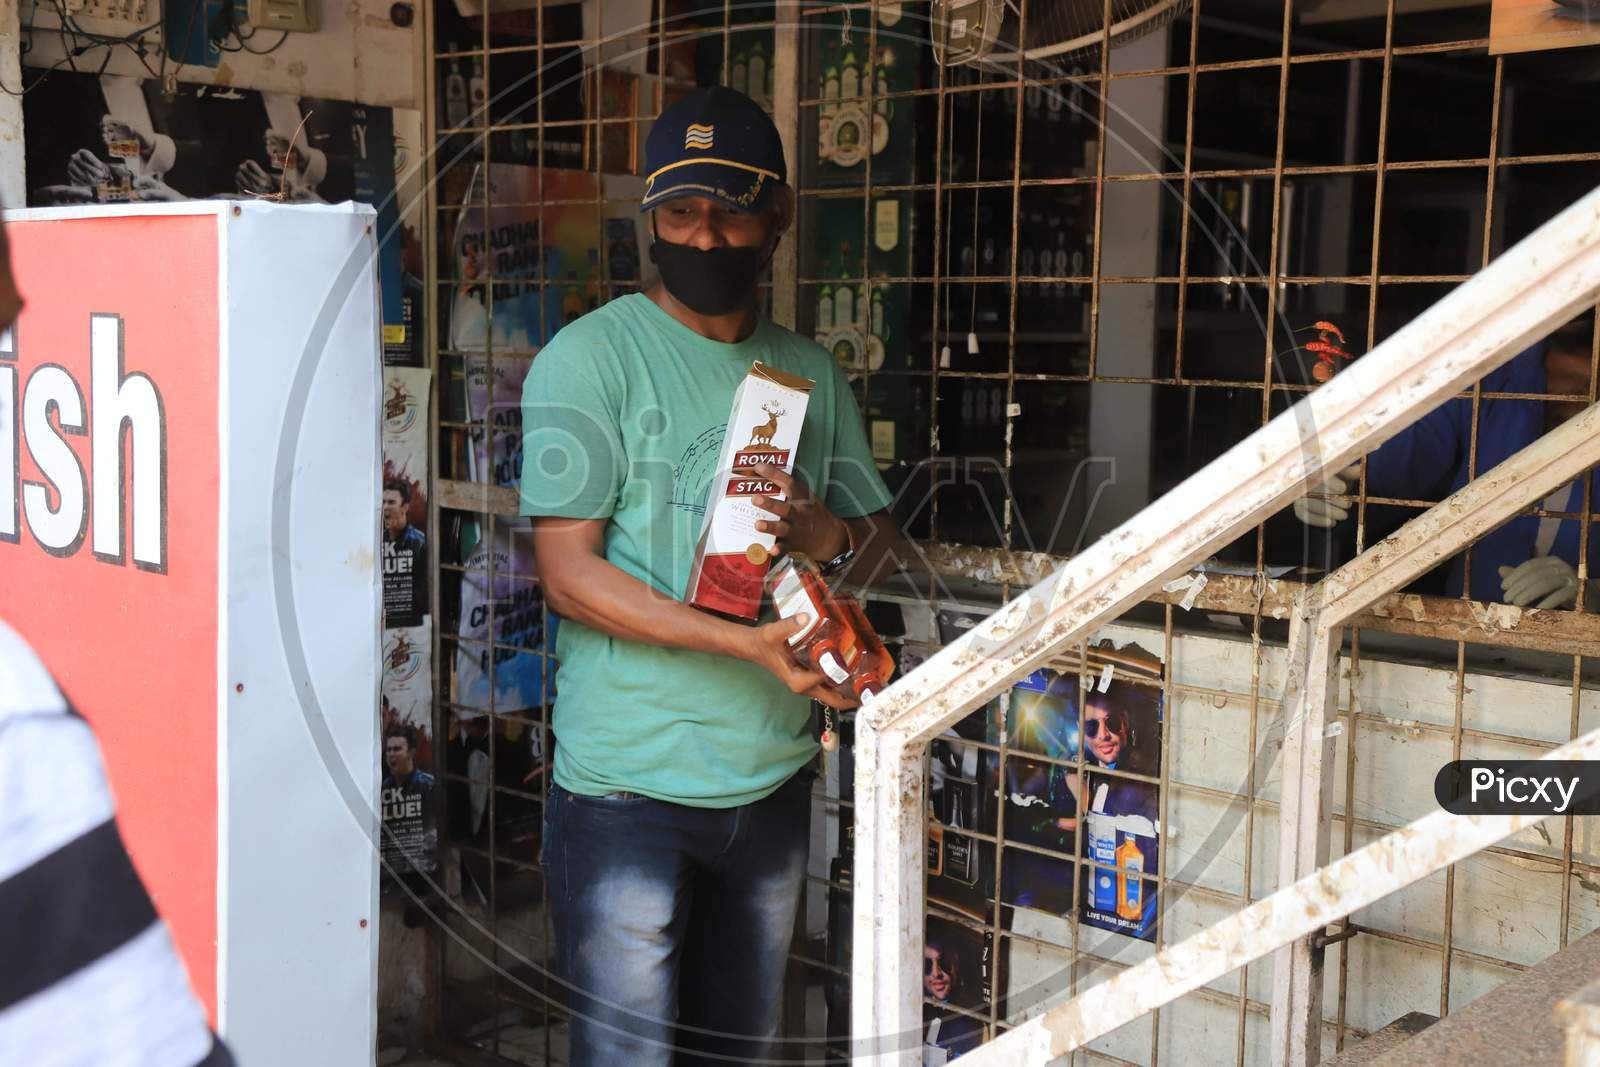 A Man Carrying Liquor Coming Out Of Wine Shop During An Extended Nationwide Lockdown To Slow The Spread Of The Coronavirus Disease Or Covid-19 In Prayagraj, May 4, 2020.